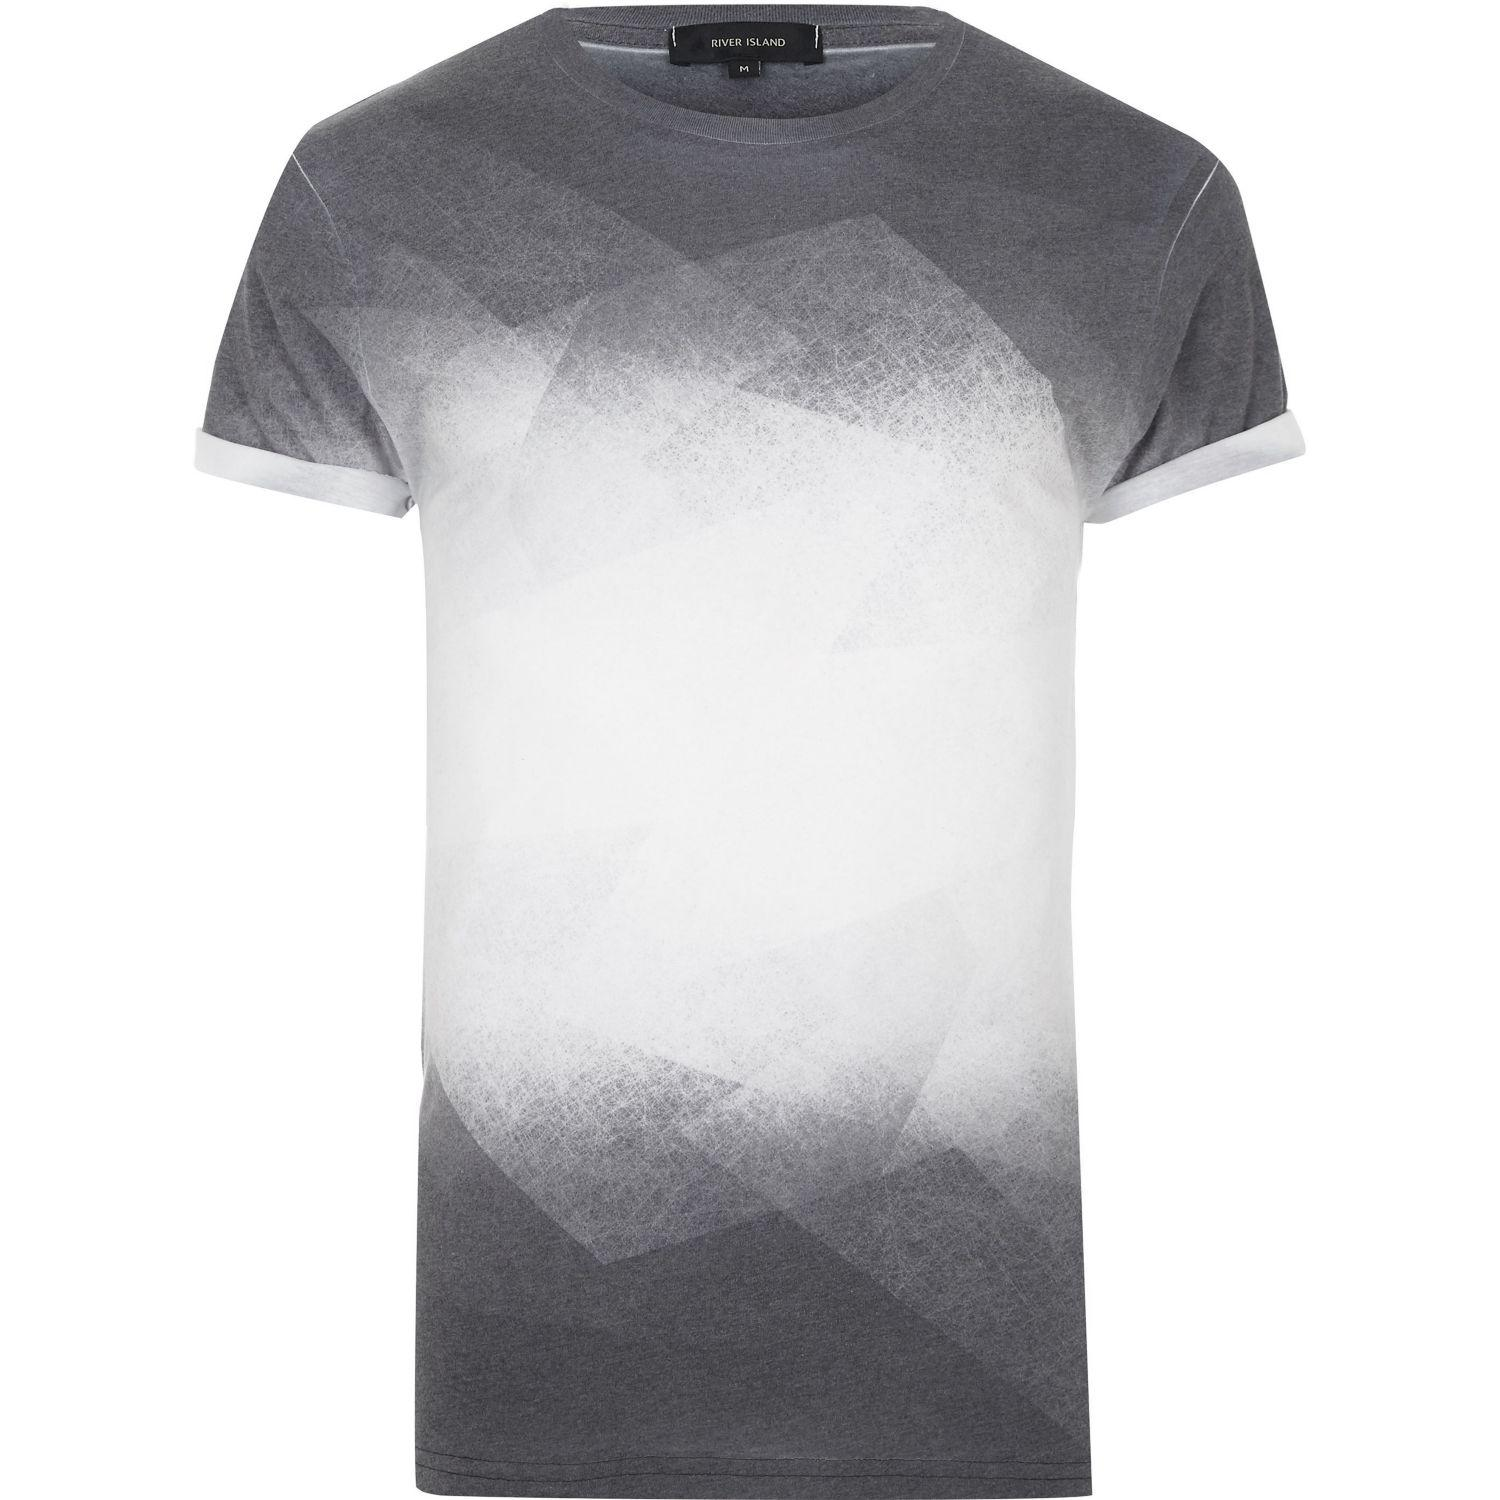 River island black faded print t shirt in black for men lyst for Faded color t shirts